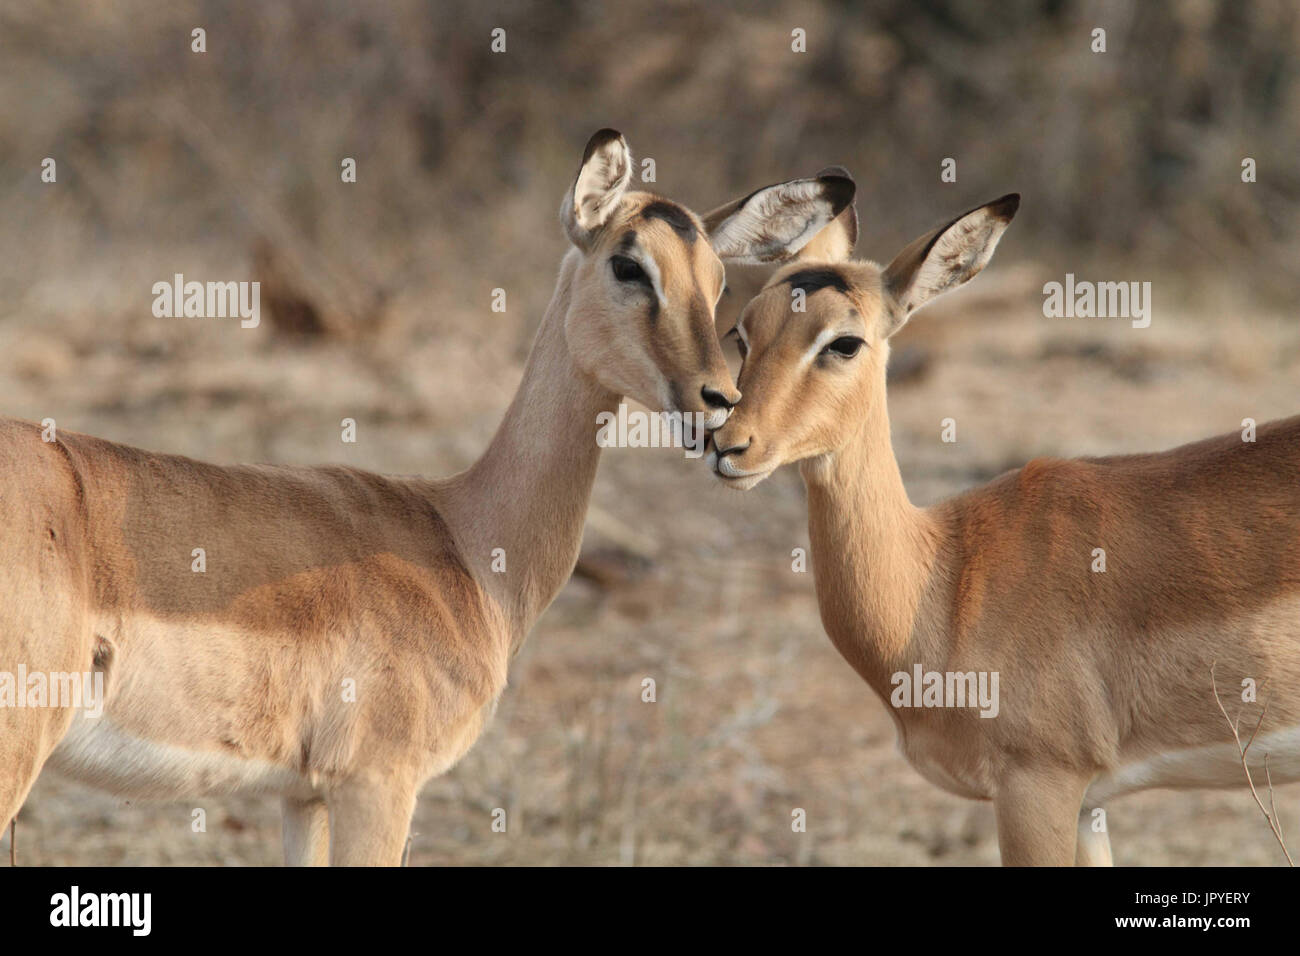 Cuddling Impalas in the savannah - South Africa - Stock Image